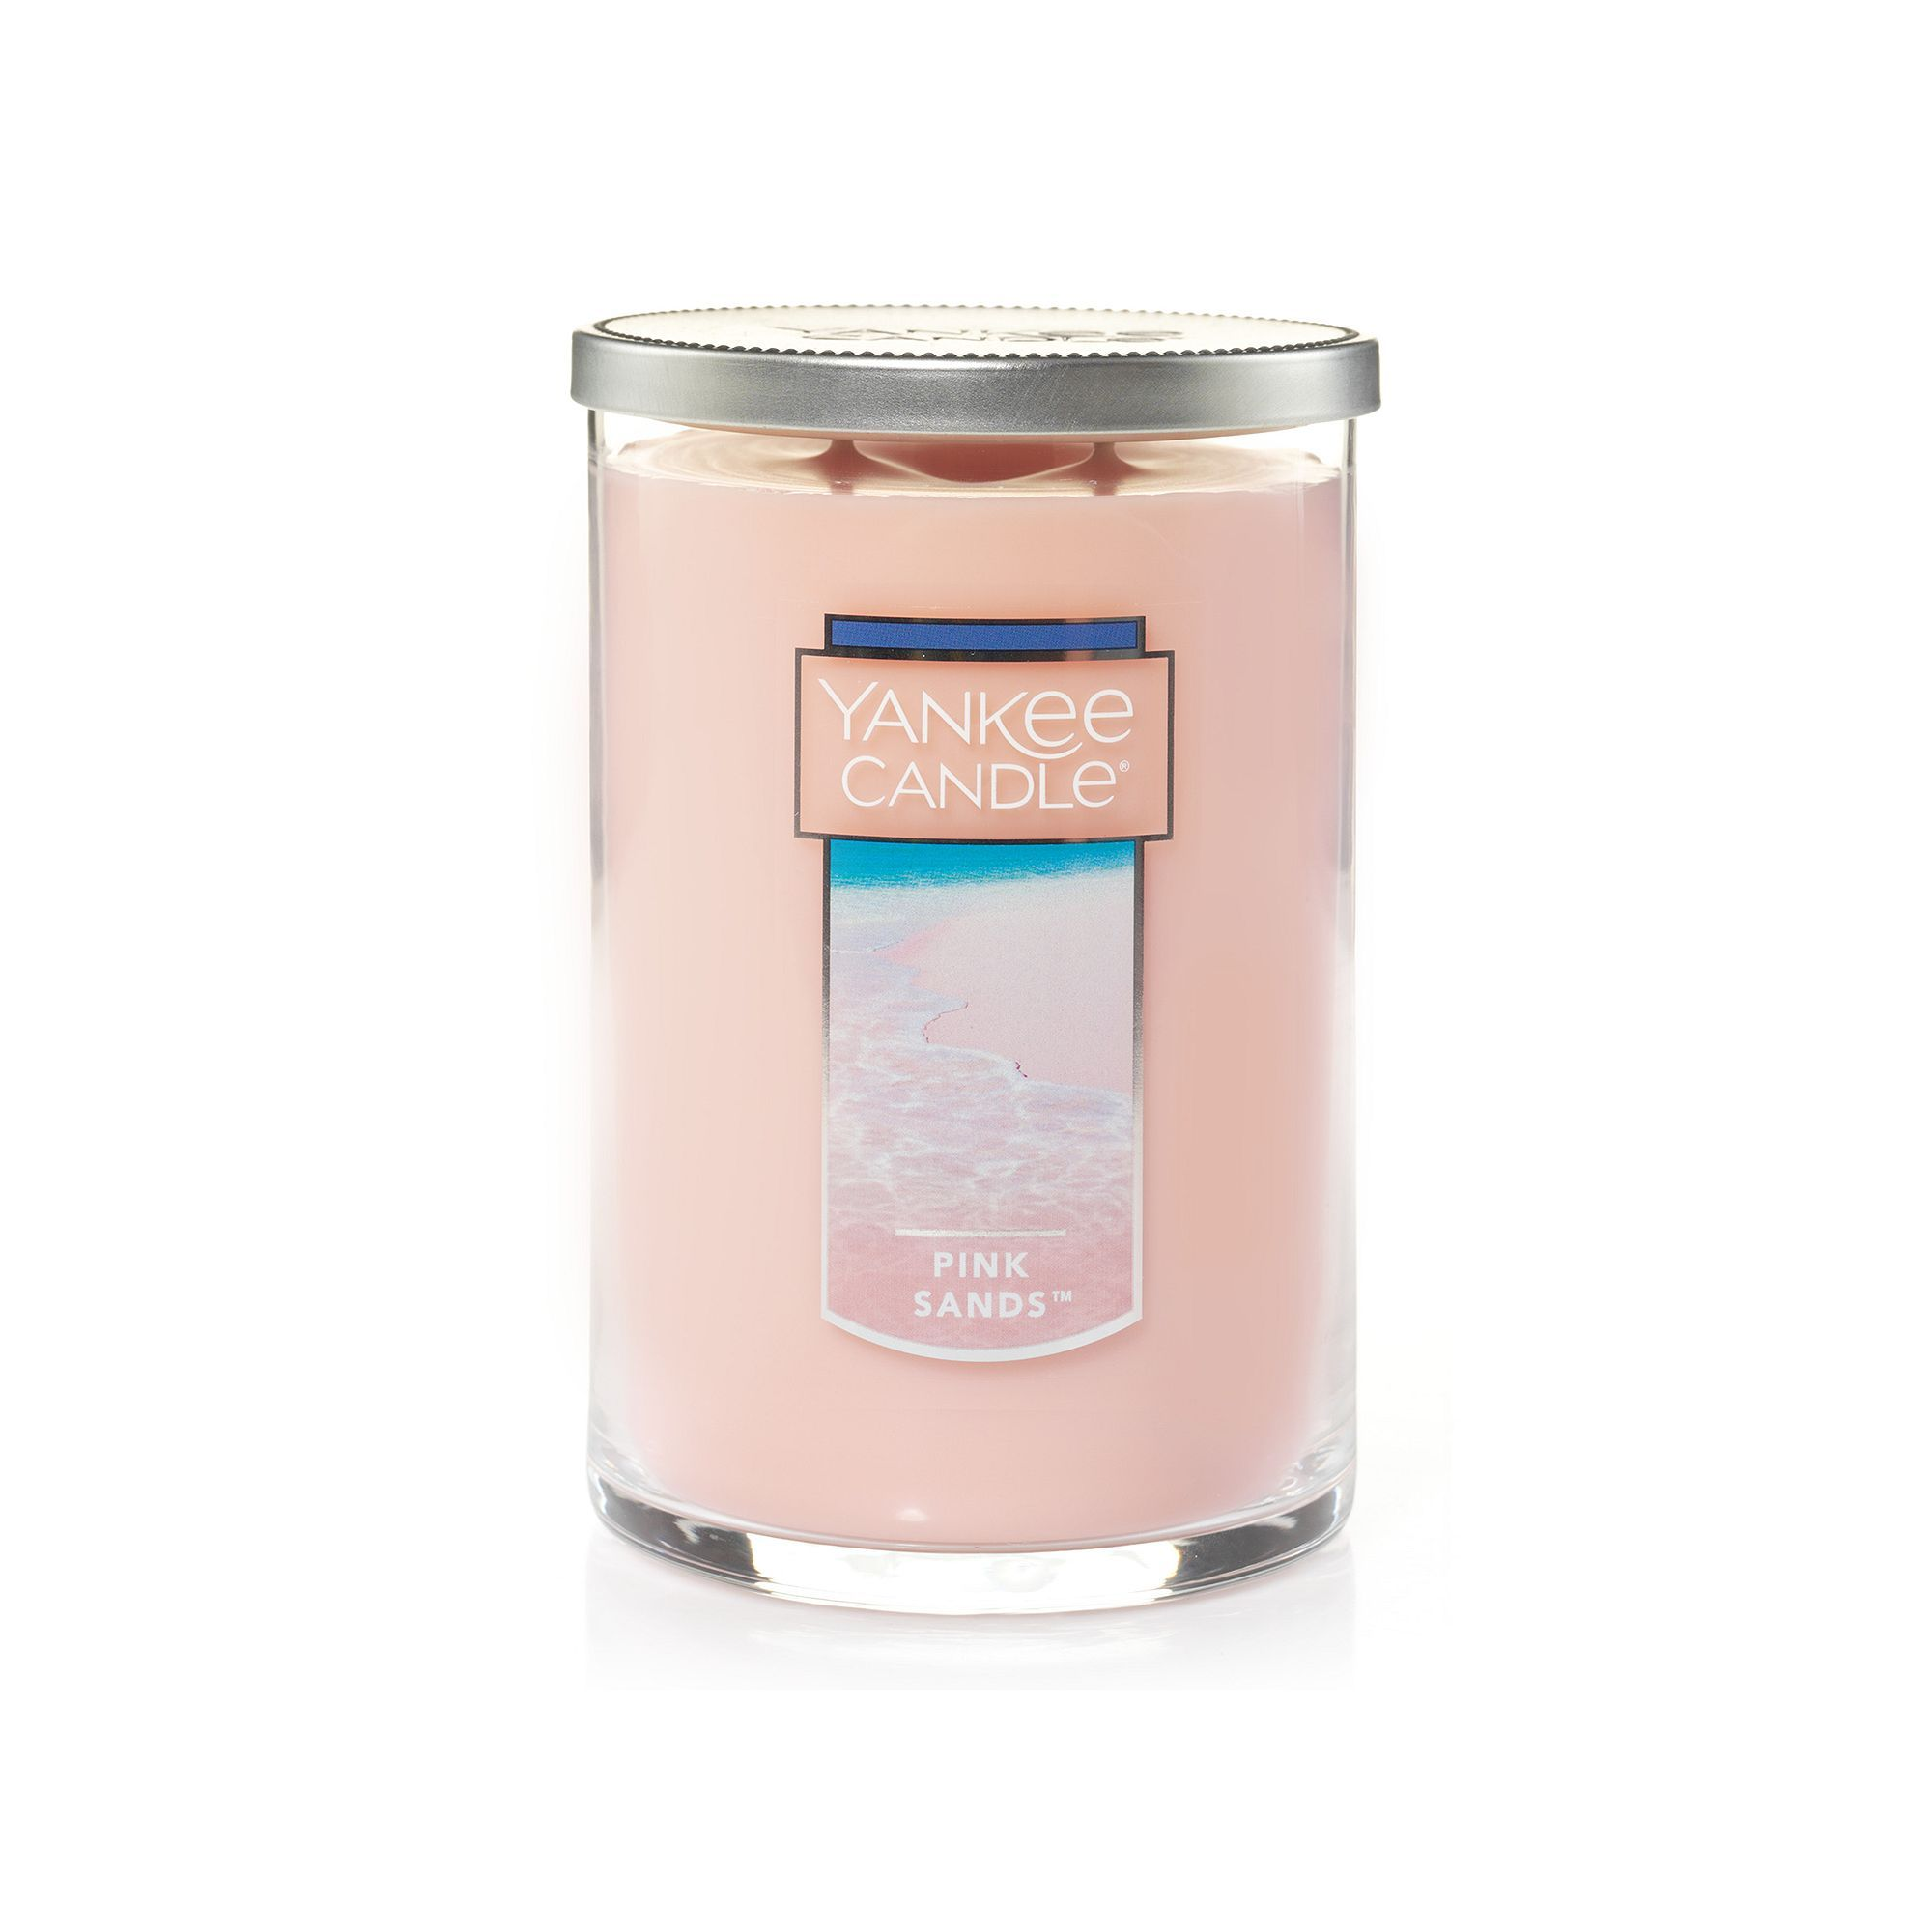 Yankee candle pink sands tall oz candle jar pink sand candle